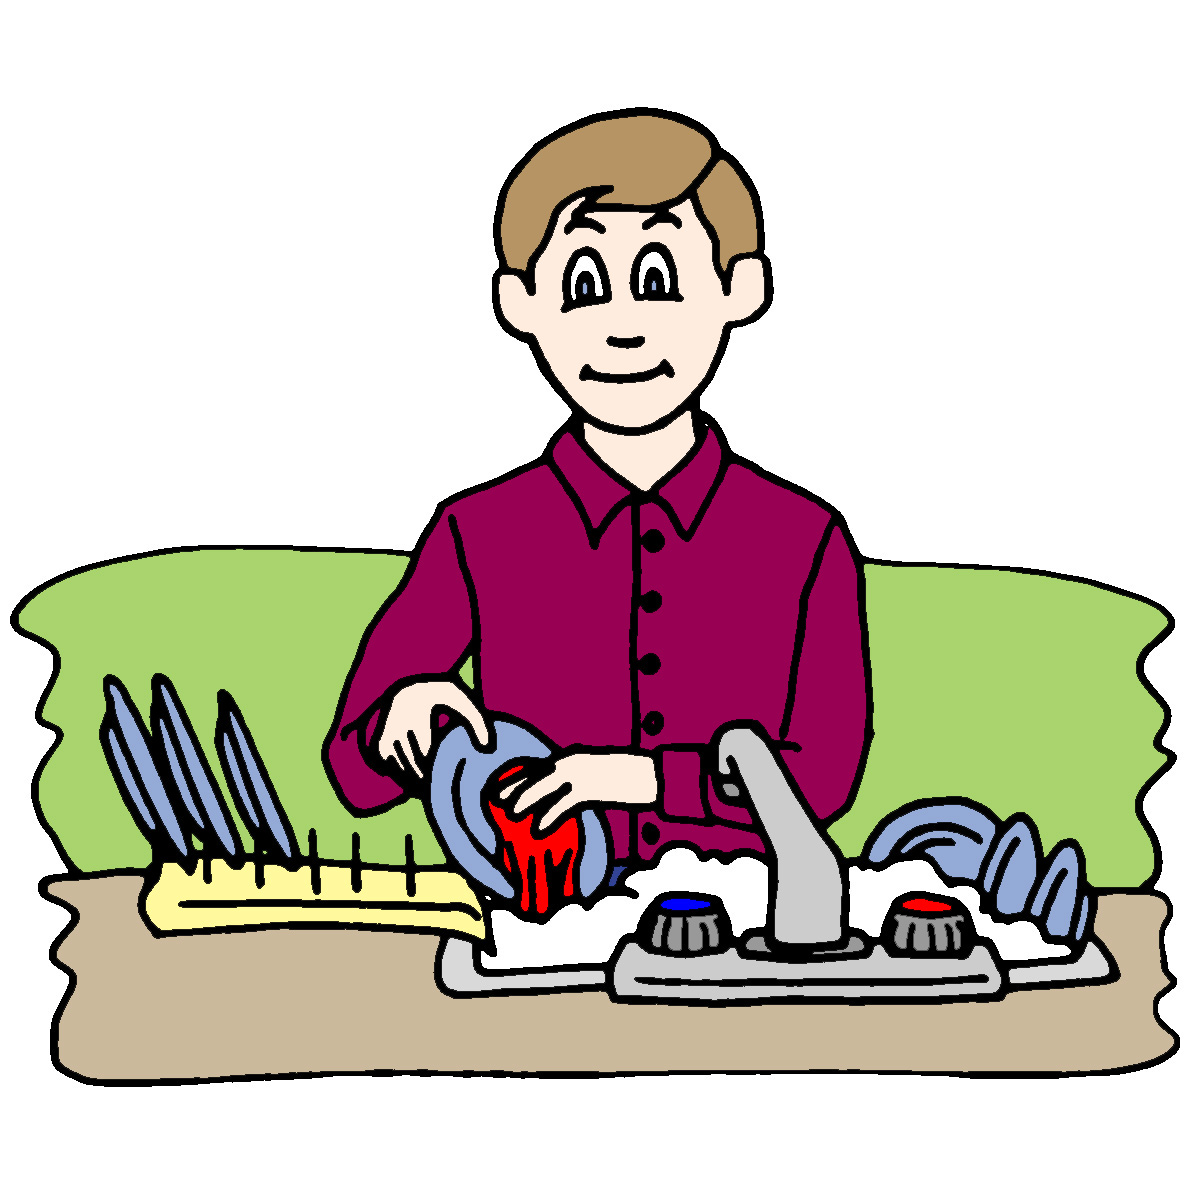 Clean Dishes Clipart - Clipart Kid